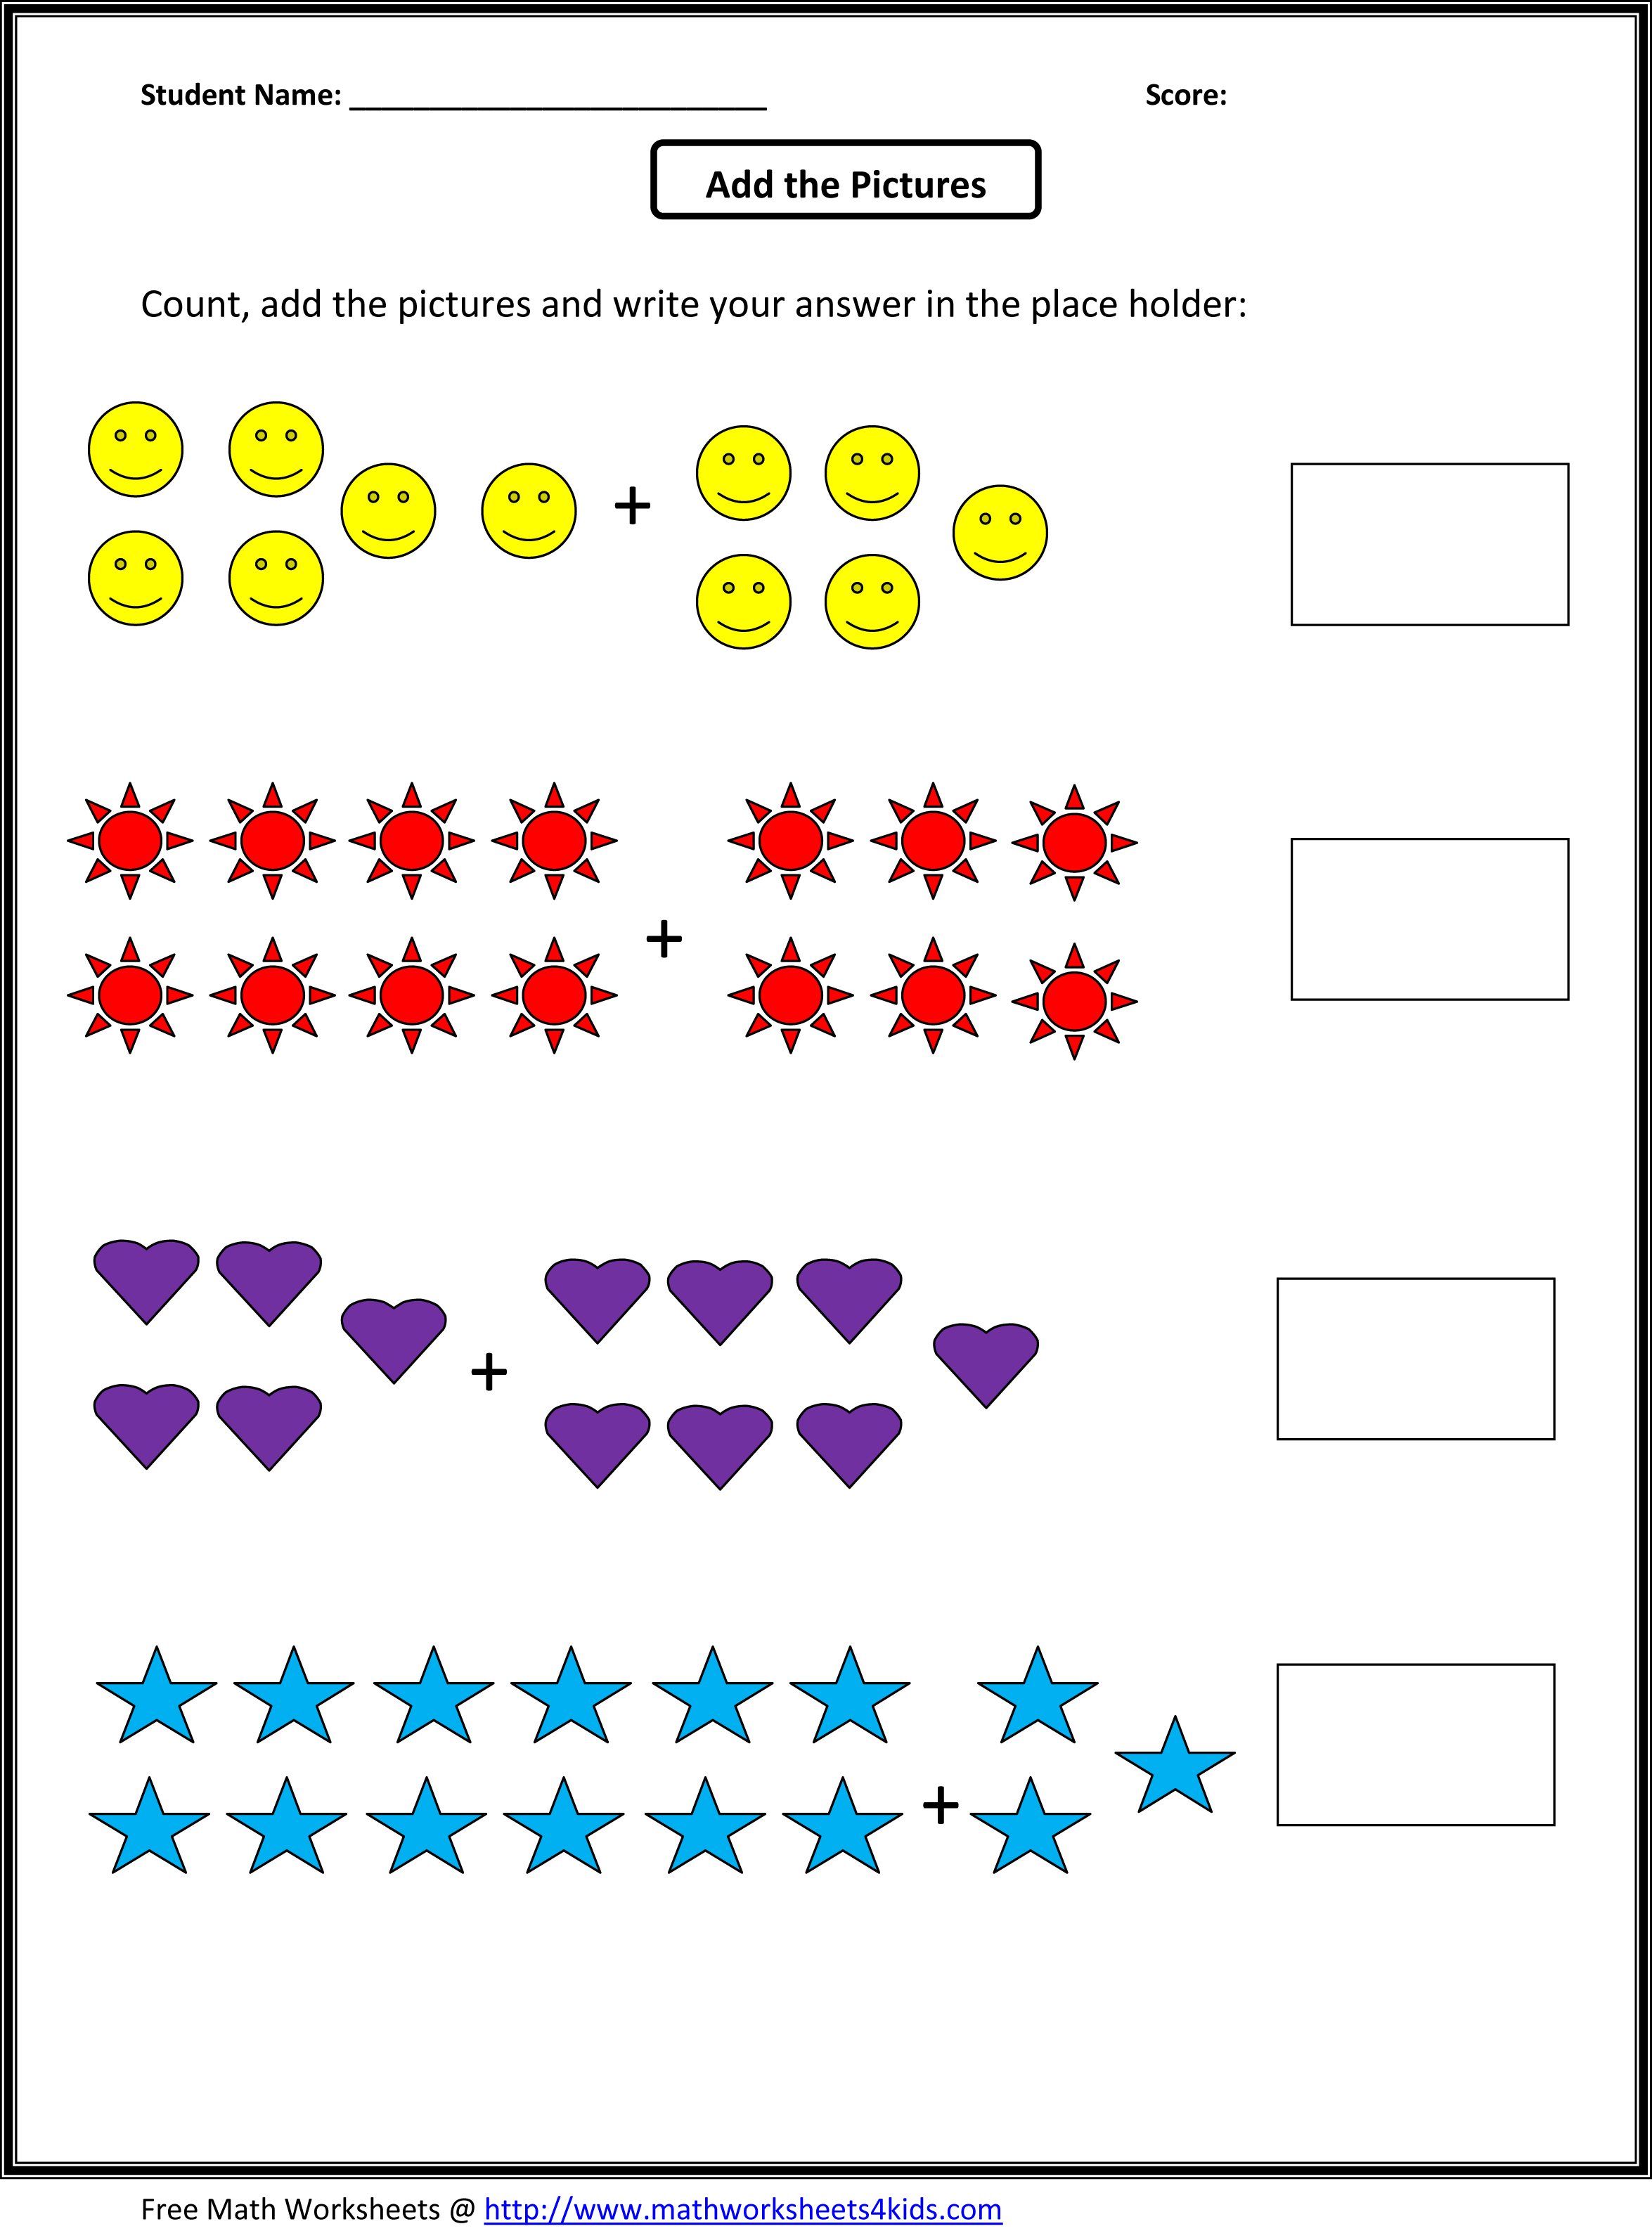 Weirdmailus  Inspiring Grade  Maths Worksheet  Reocurent With Entrancing Math Worksheets For St Grade Free  Reocurent With Astounding Work Worksheets Also How The Nervous System Works Worksheet In Addition Identity Property Of Multiplication Worksheets And Social Studies For Kindergarten Worksheets As Well As Preschool Math Worksheets Printable Additionally Gingerbread Worksheets From Reocurentcom With Weirdmailus  Entrancing Grade  Maths Worksheet  Reocurent With Astounding Math Worksheets For St Grade Free  Reocurent And Inspiring Work Worksheets Also How The Nervous System Works Worksheet In Addition Identity Property Of Multiplication Worksheets From Reocurentcom